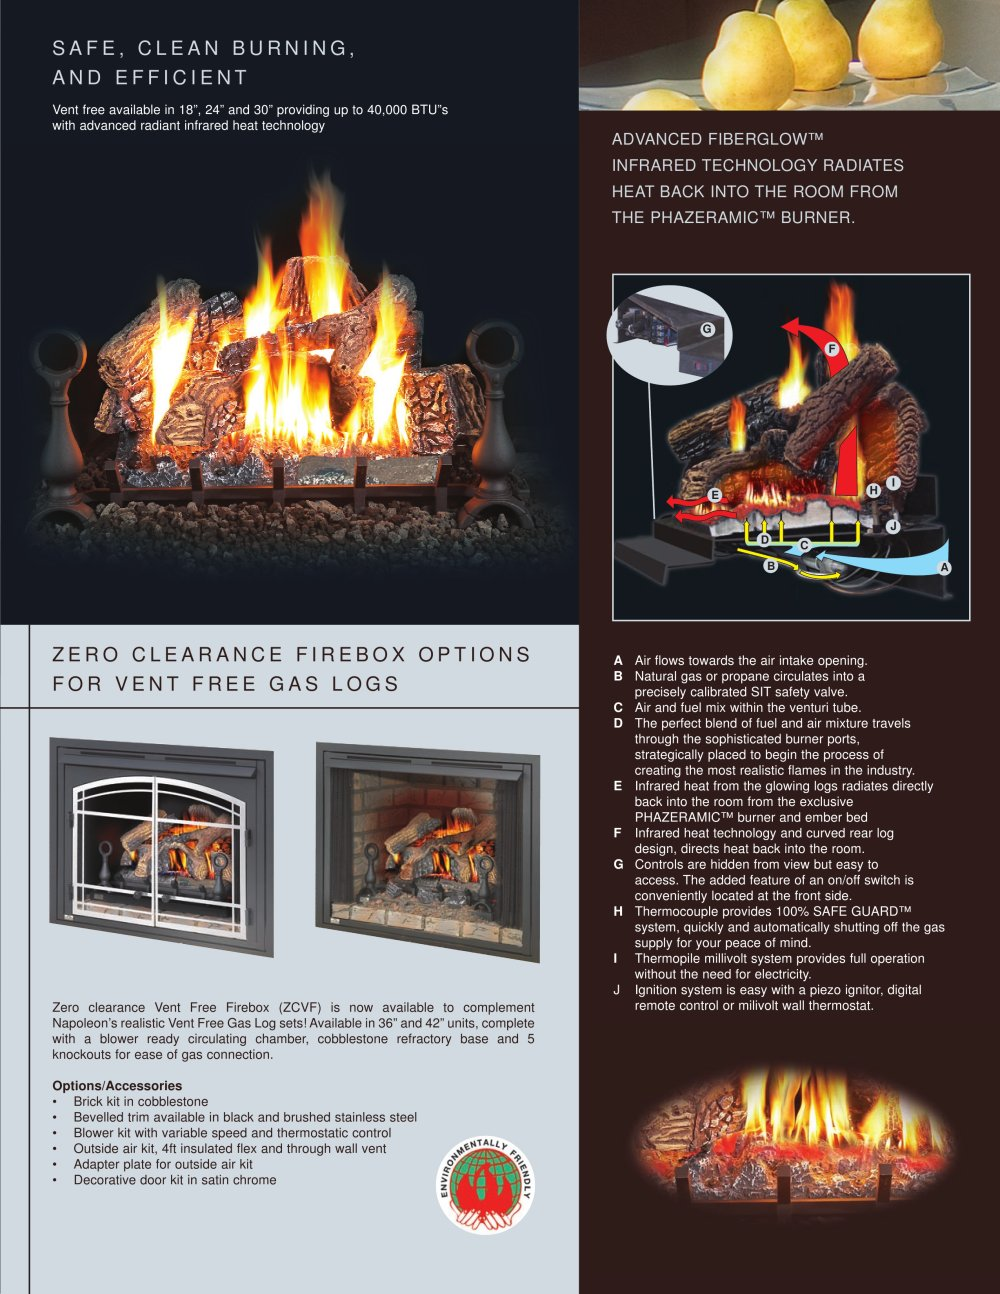 Vent Free Gas Logs - Facts About Unvented Gas Log Fireplaces